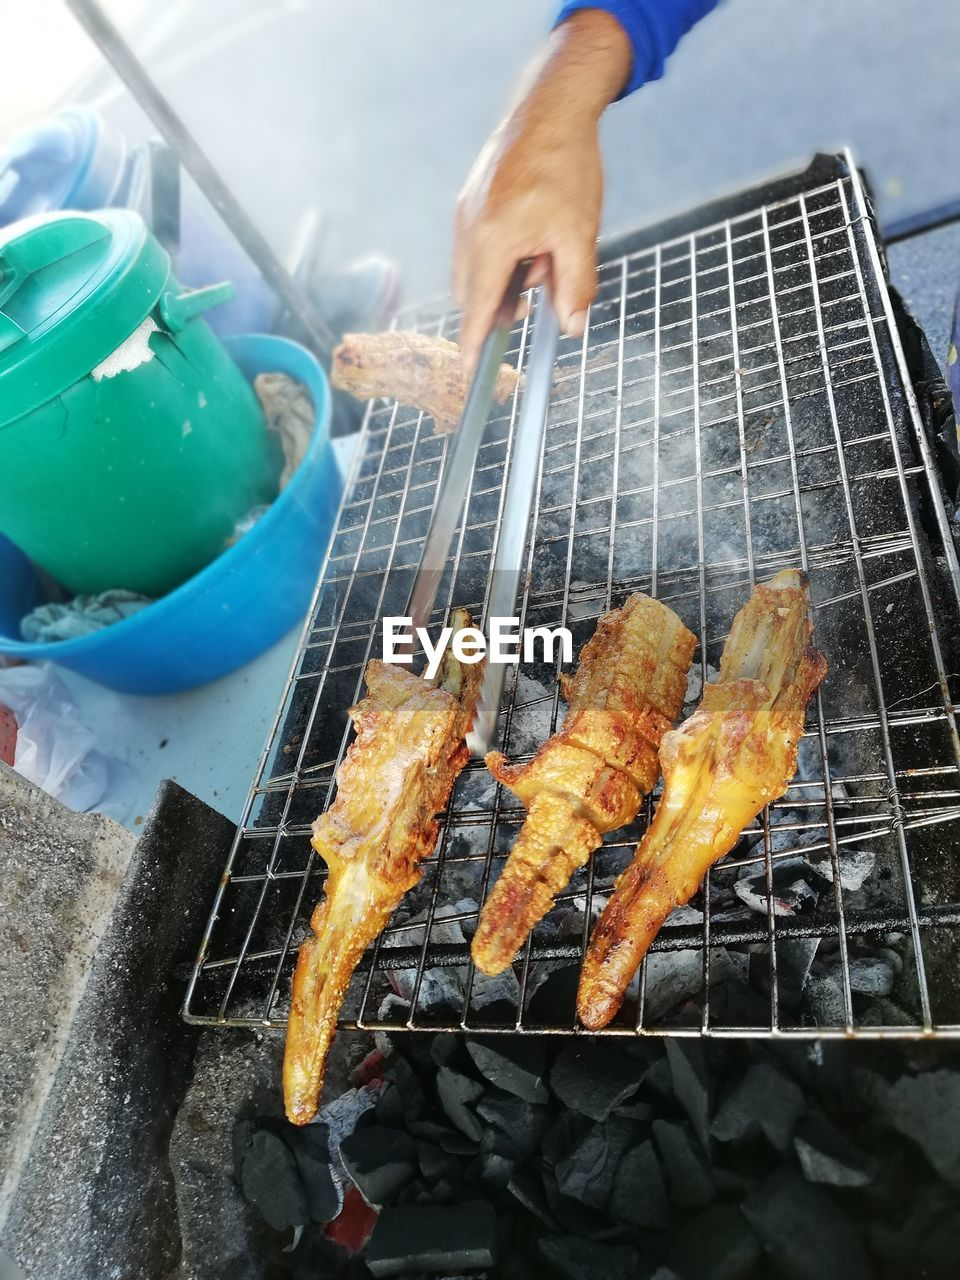 food, food and drink, preparation, one person, barbecue, real people, meat, holding, freshness, heat - temperature, human hand, barbecue grill, hand, unrecognizable person, preparing food, human body part, outdoors, day, high angle view, finger